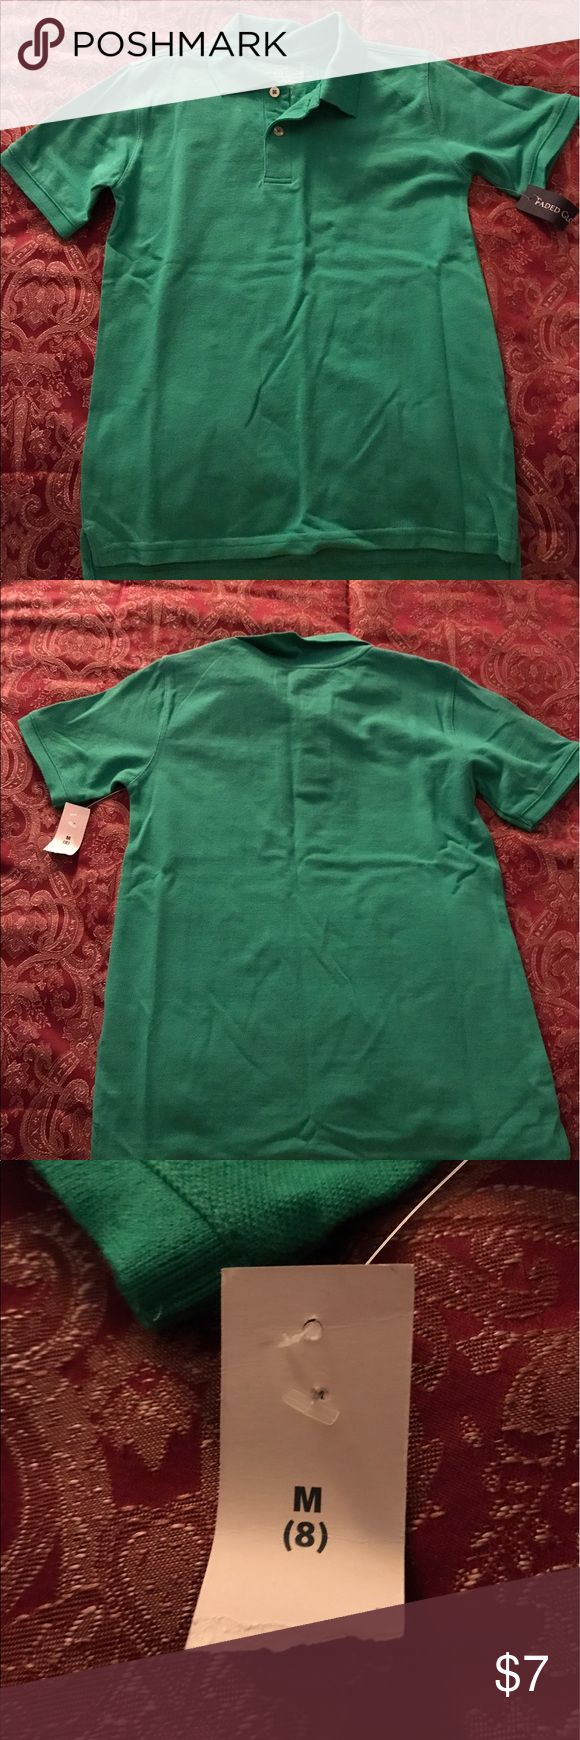 Boy's Faded Glory Green Polo Shirt Size Medium 8 Boy's Faded Glory Polo Shirt Size Medium 8.....made in Pakistan......100% cotton......Green....brand new with tags! Faded Glory Shirts & Tops Polos